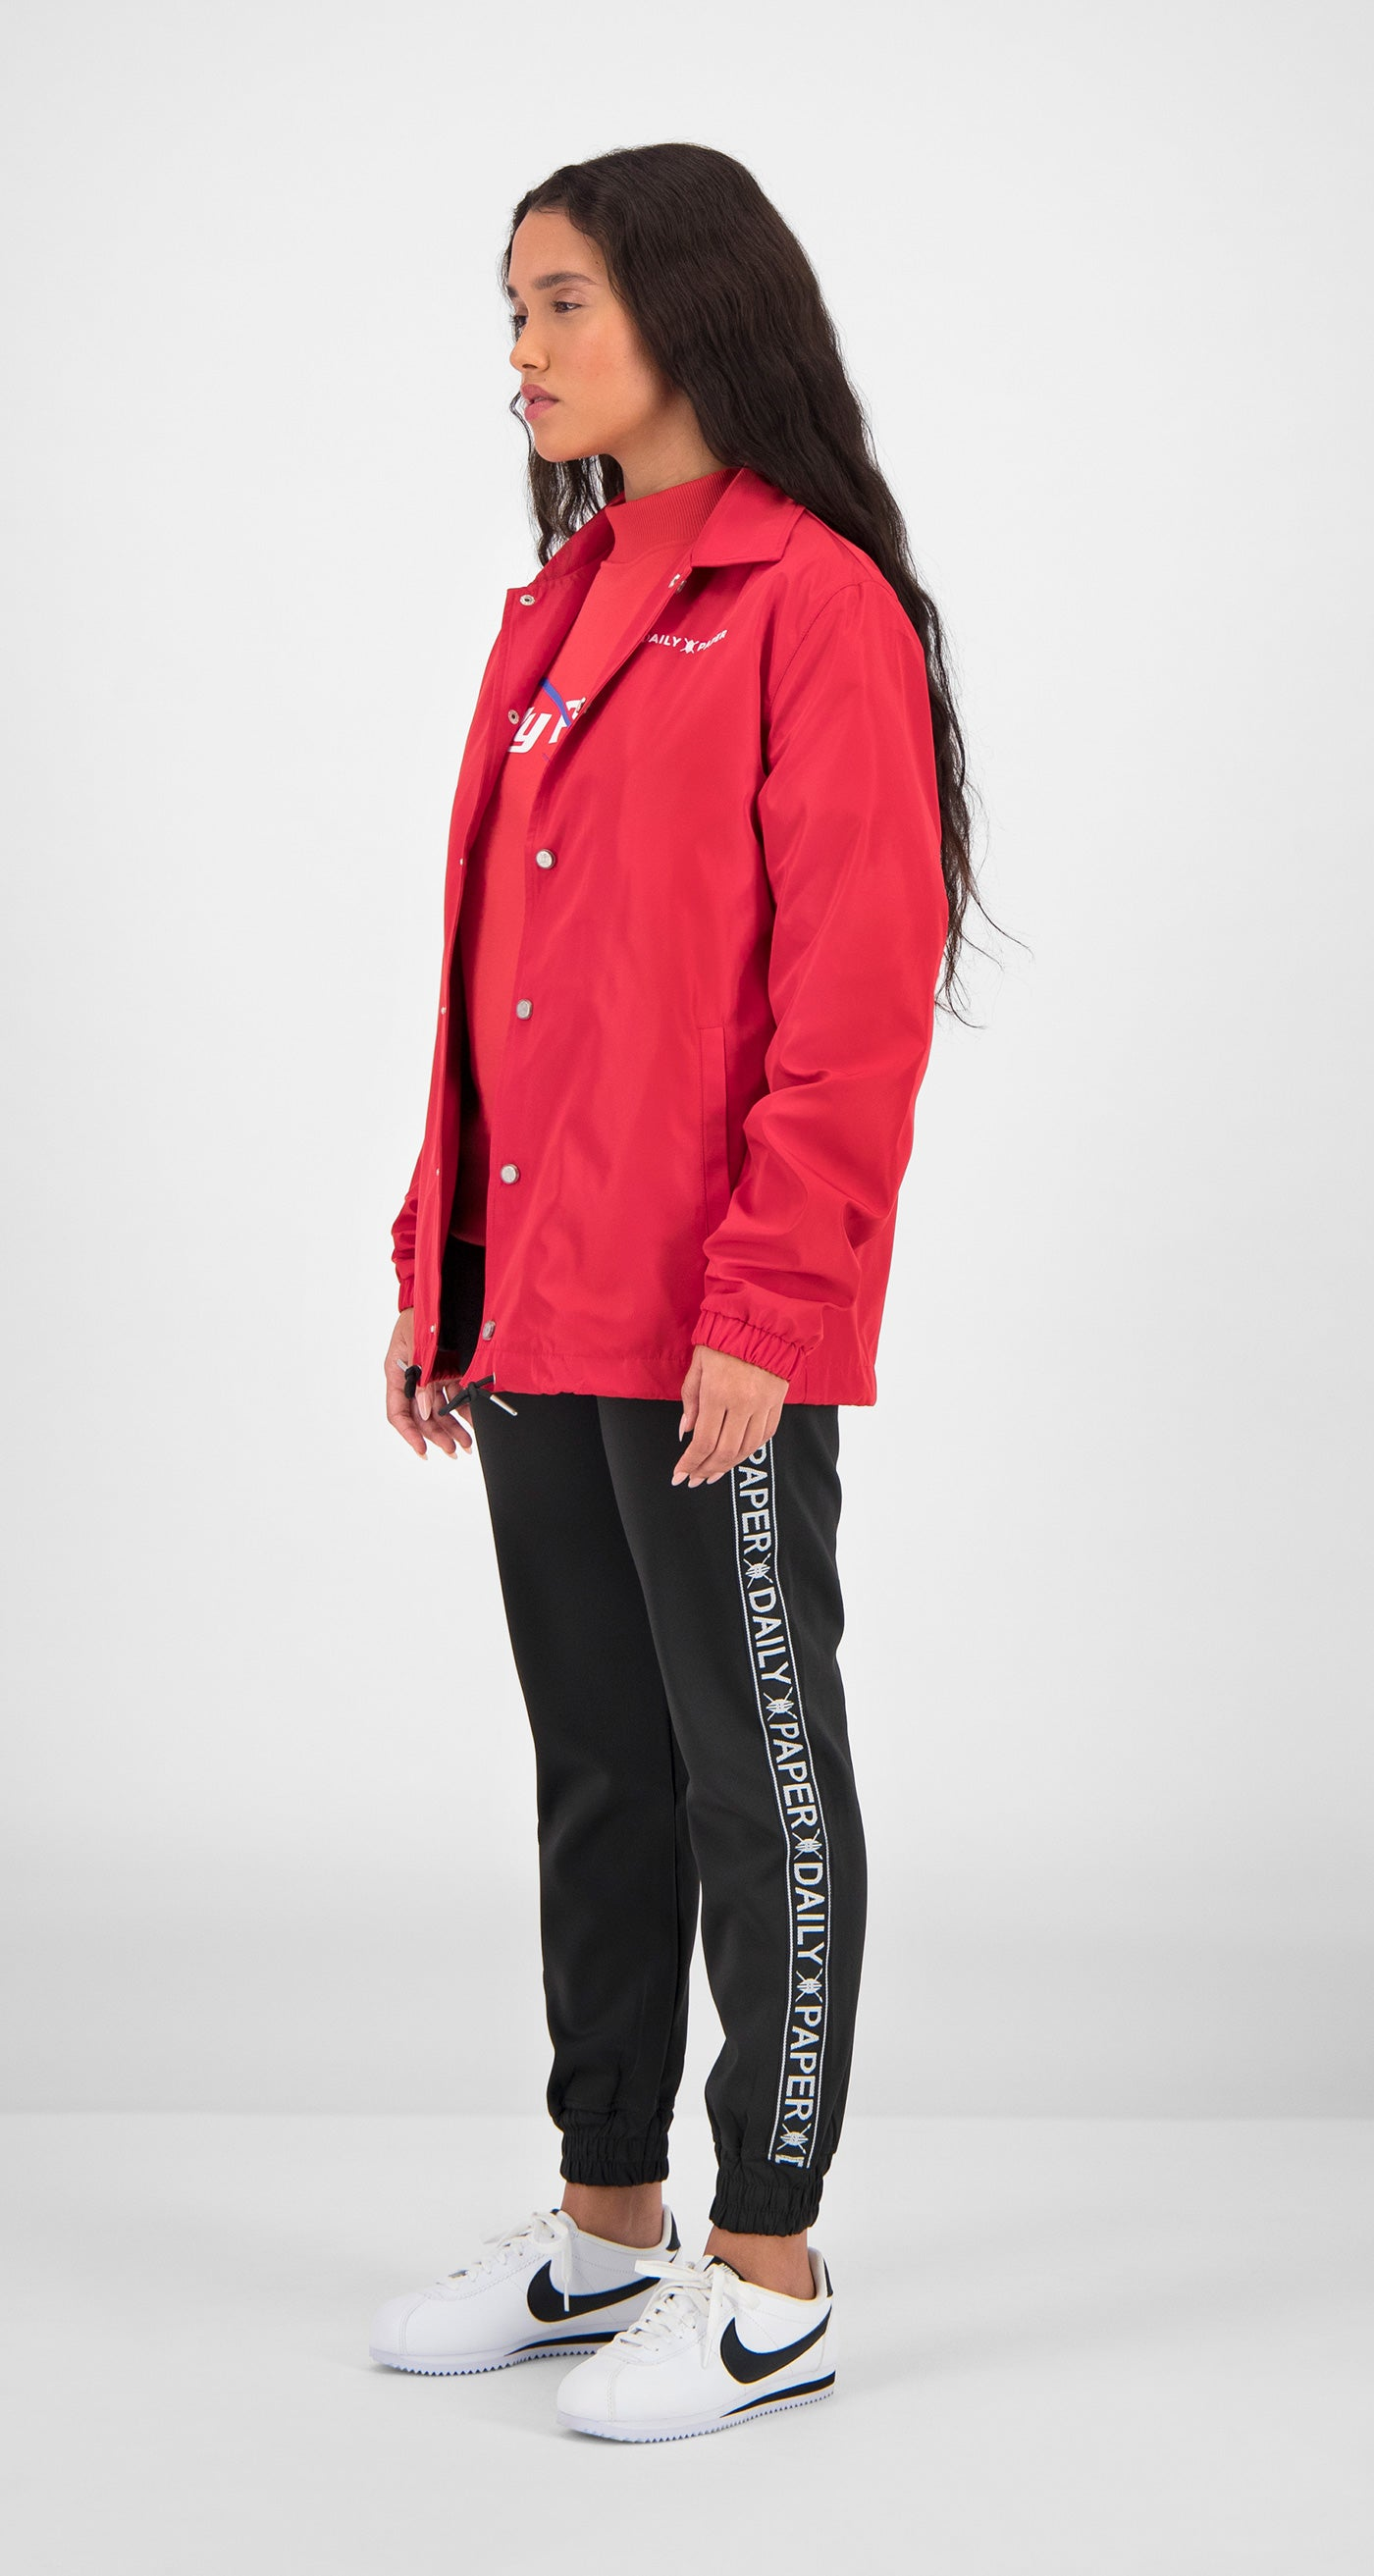 Daily Paper - Red Essential Coach Jacket Women